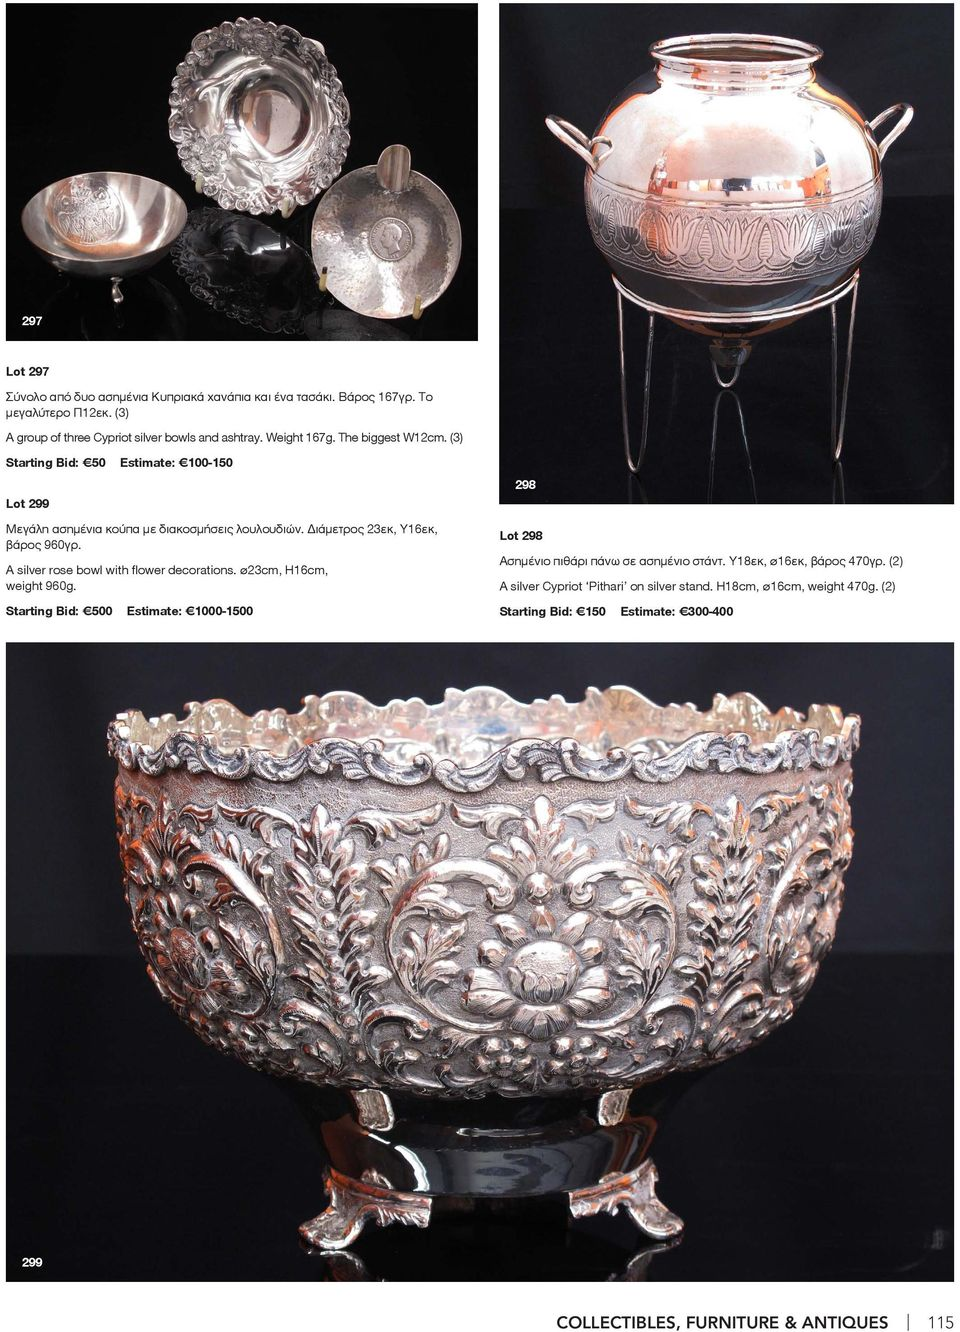 A silver rose bowl with flower decorations. ø23cm, H16cm, weight 960g.